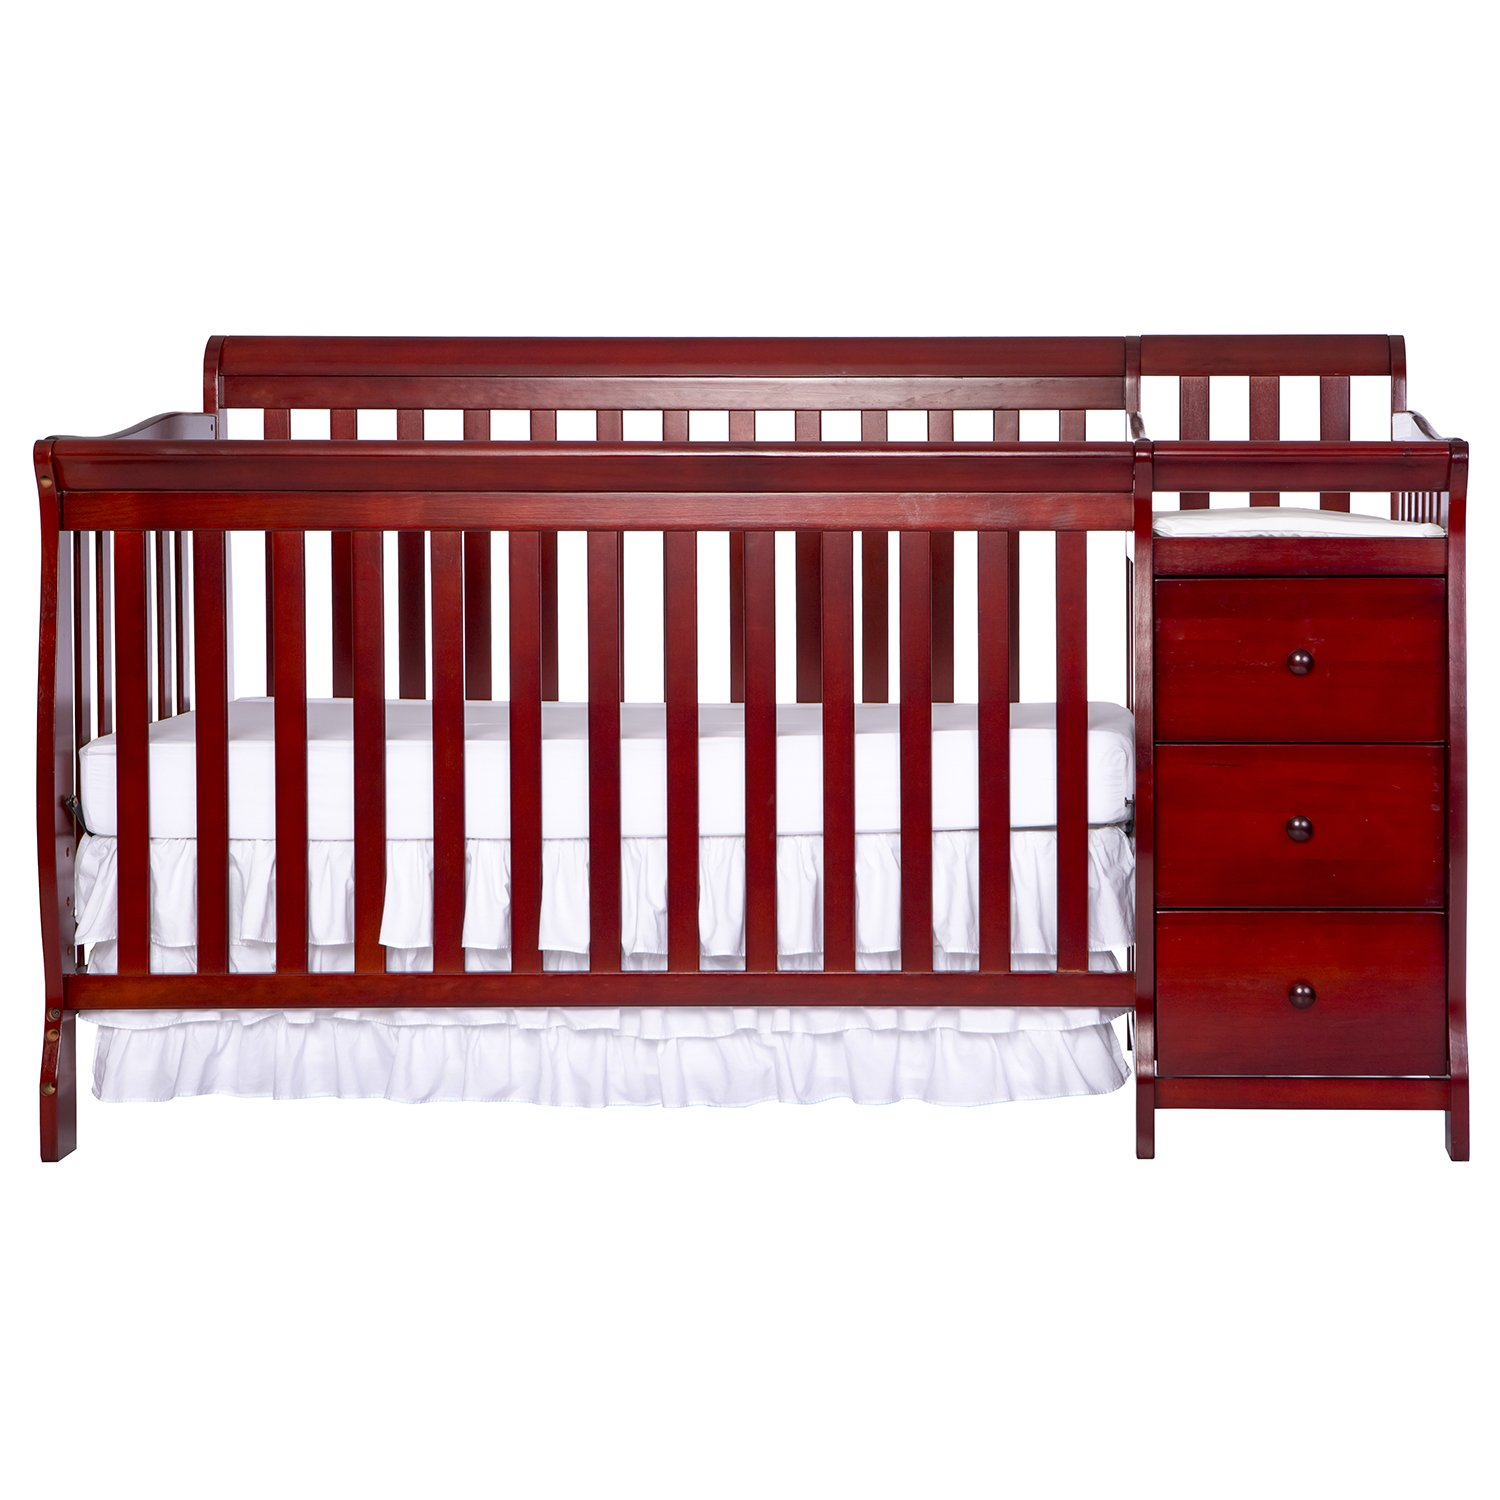 Dream On Me 5 in 1 Brody Convertible Crib with Changer, Cherry